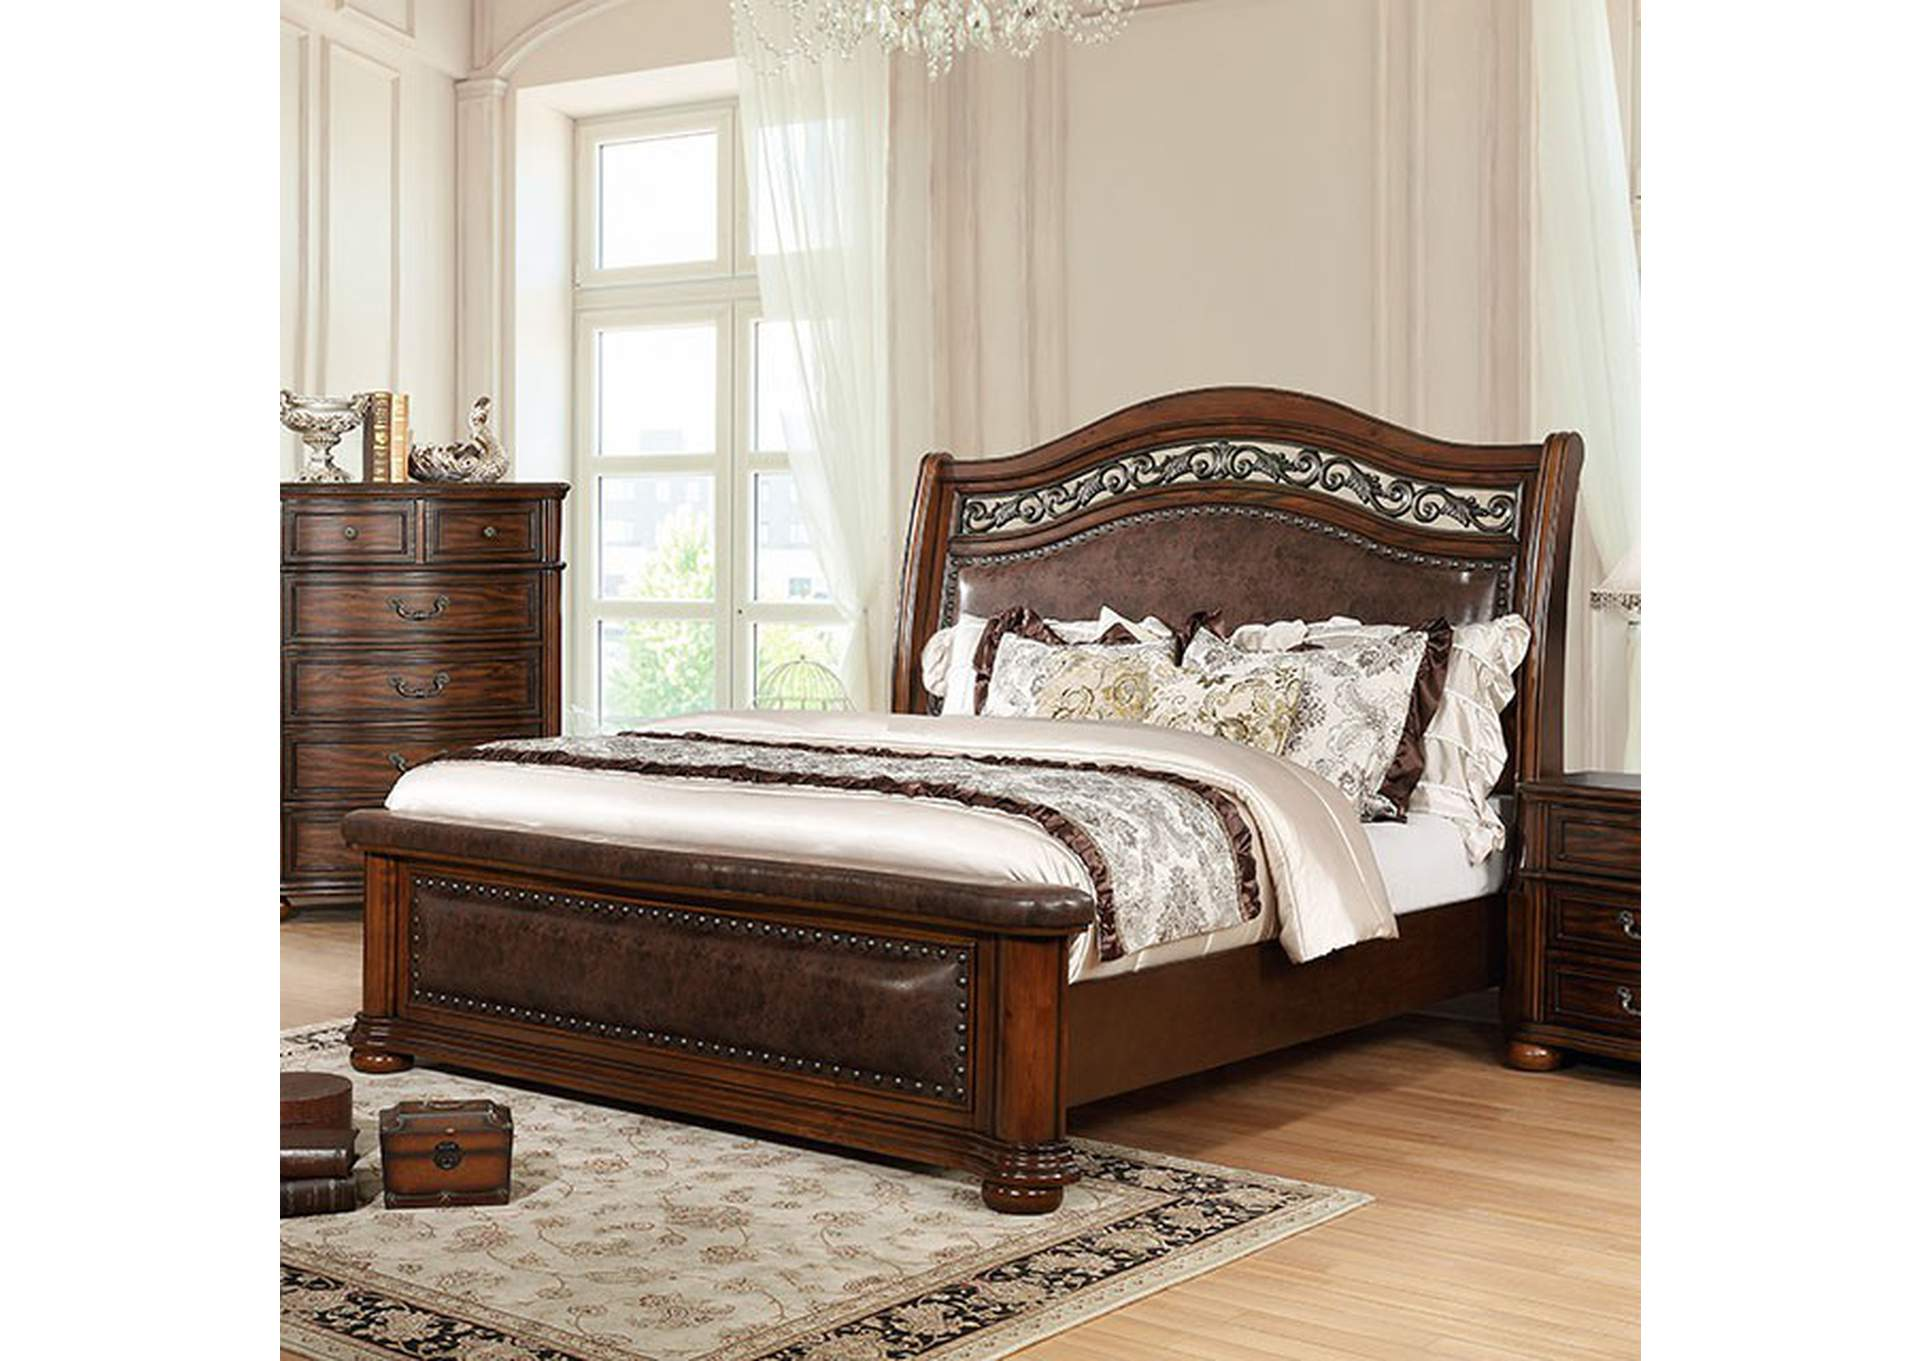 Janiya Brown Upholstered Queen Panel Bed,Furniture of America